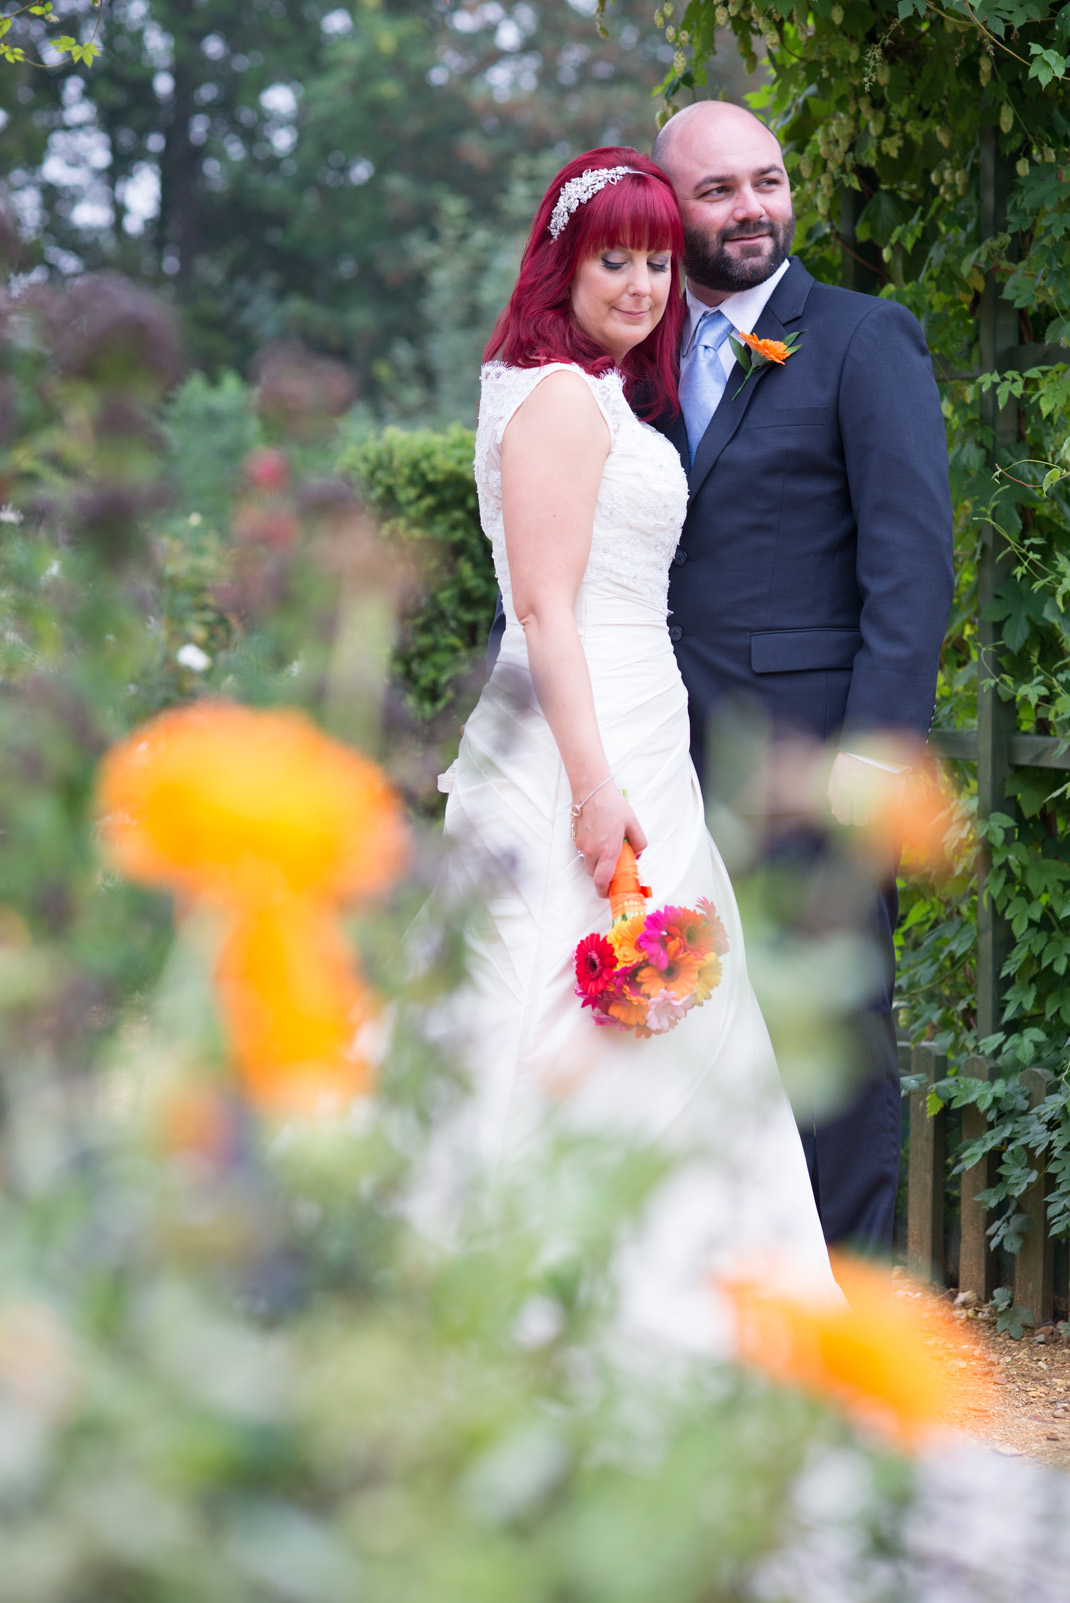 bokeh, pretty, bright florals, red hair, bride, gardens, Marwell Zoo